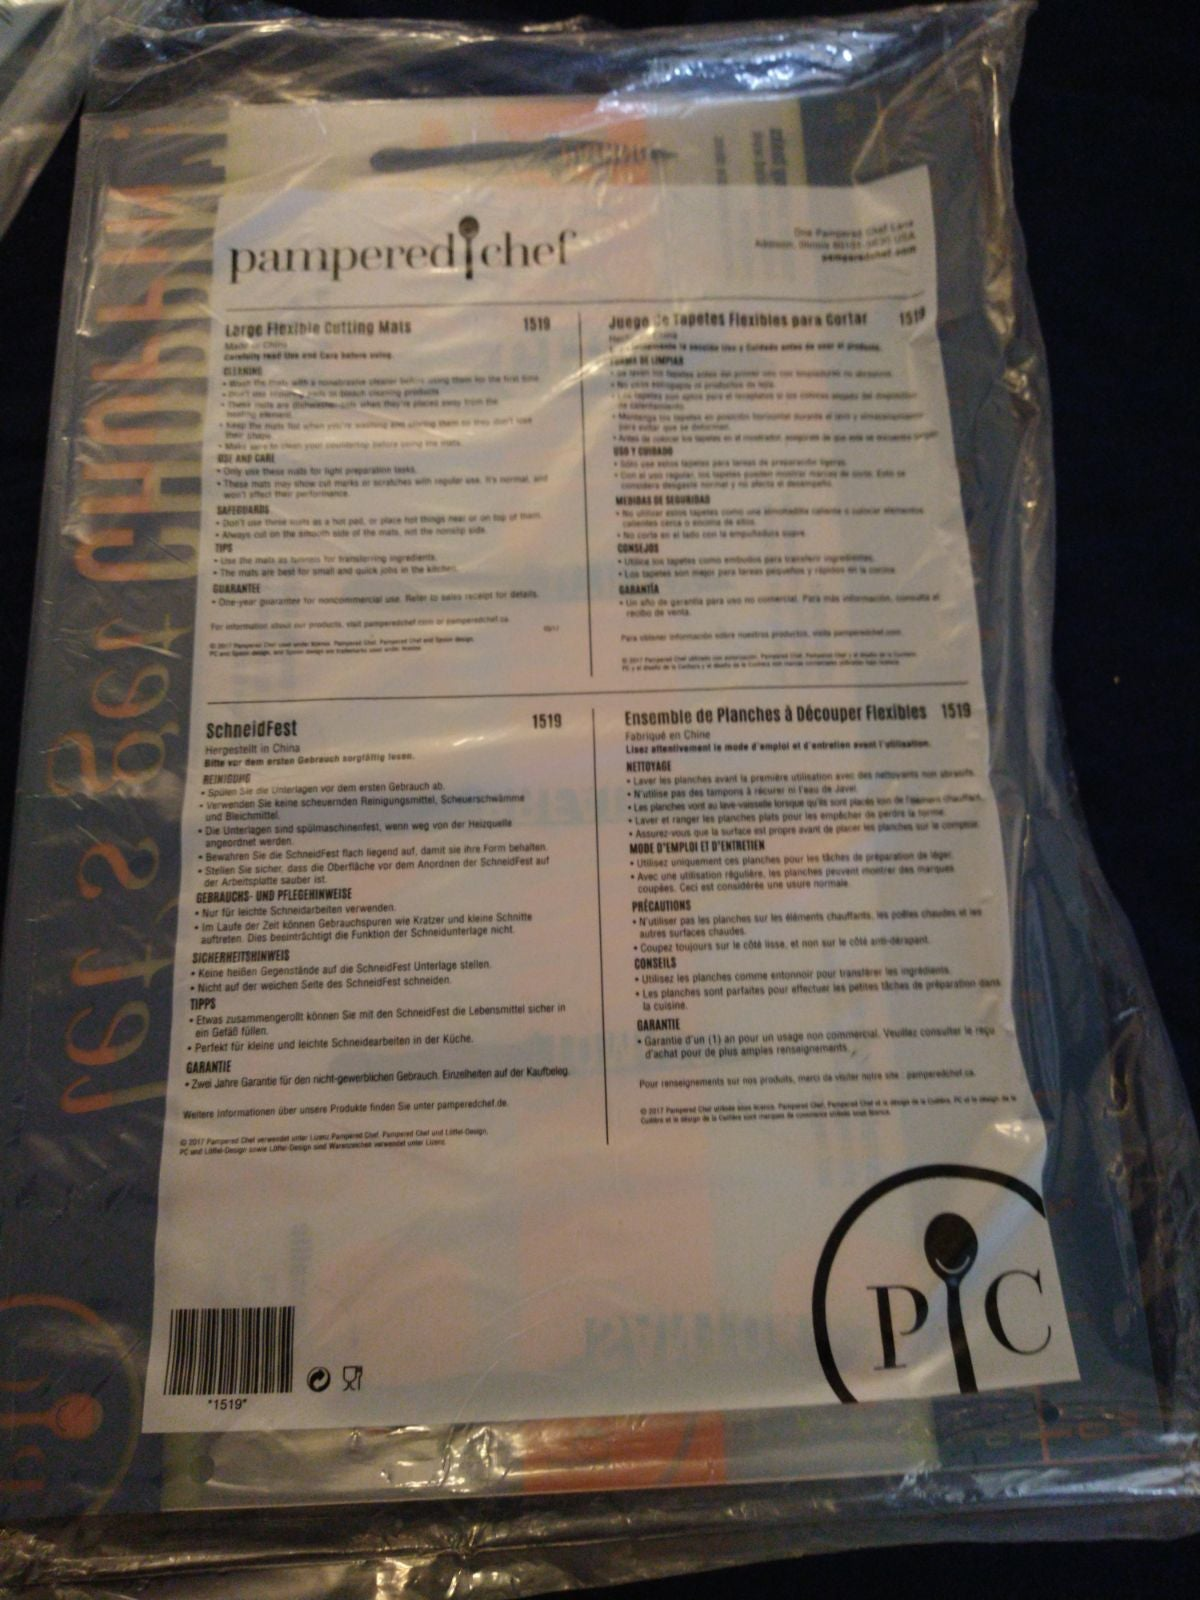 Pampered Chef large cutting mats